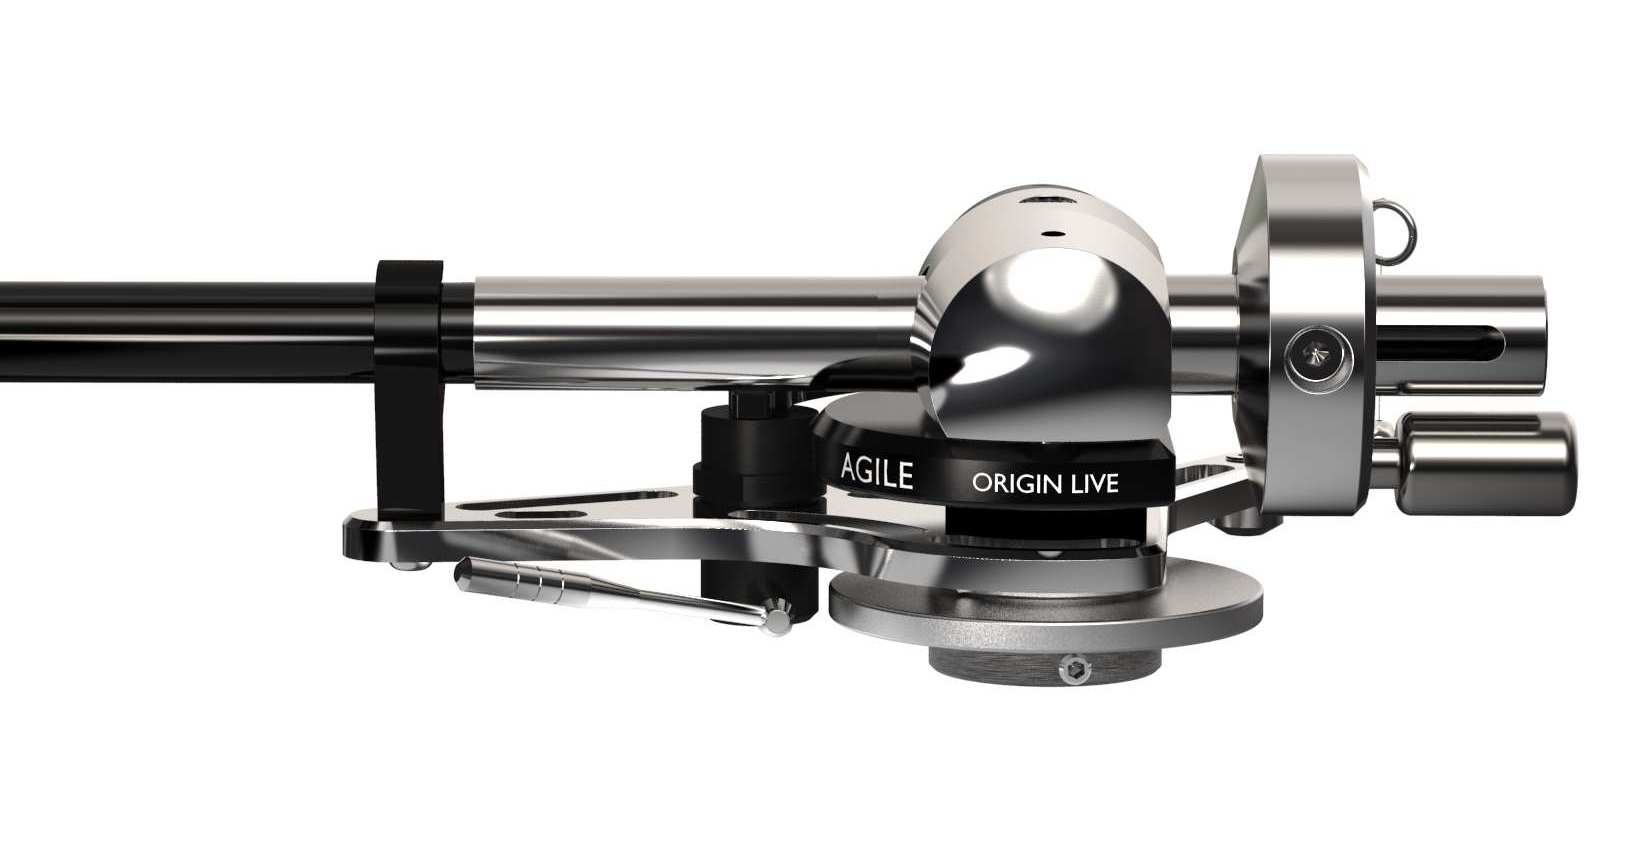 Origin Live Agile Tonearm image for blog post